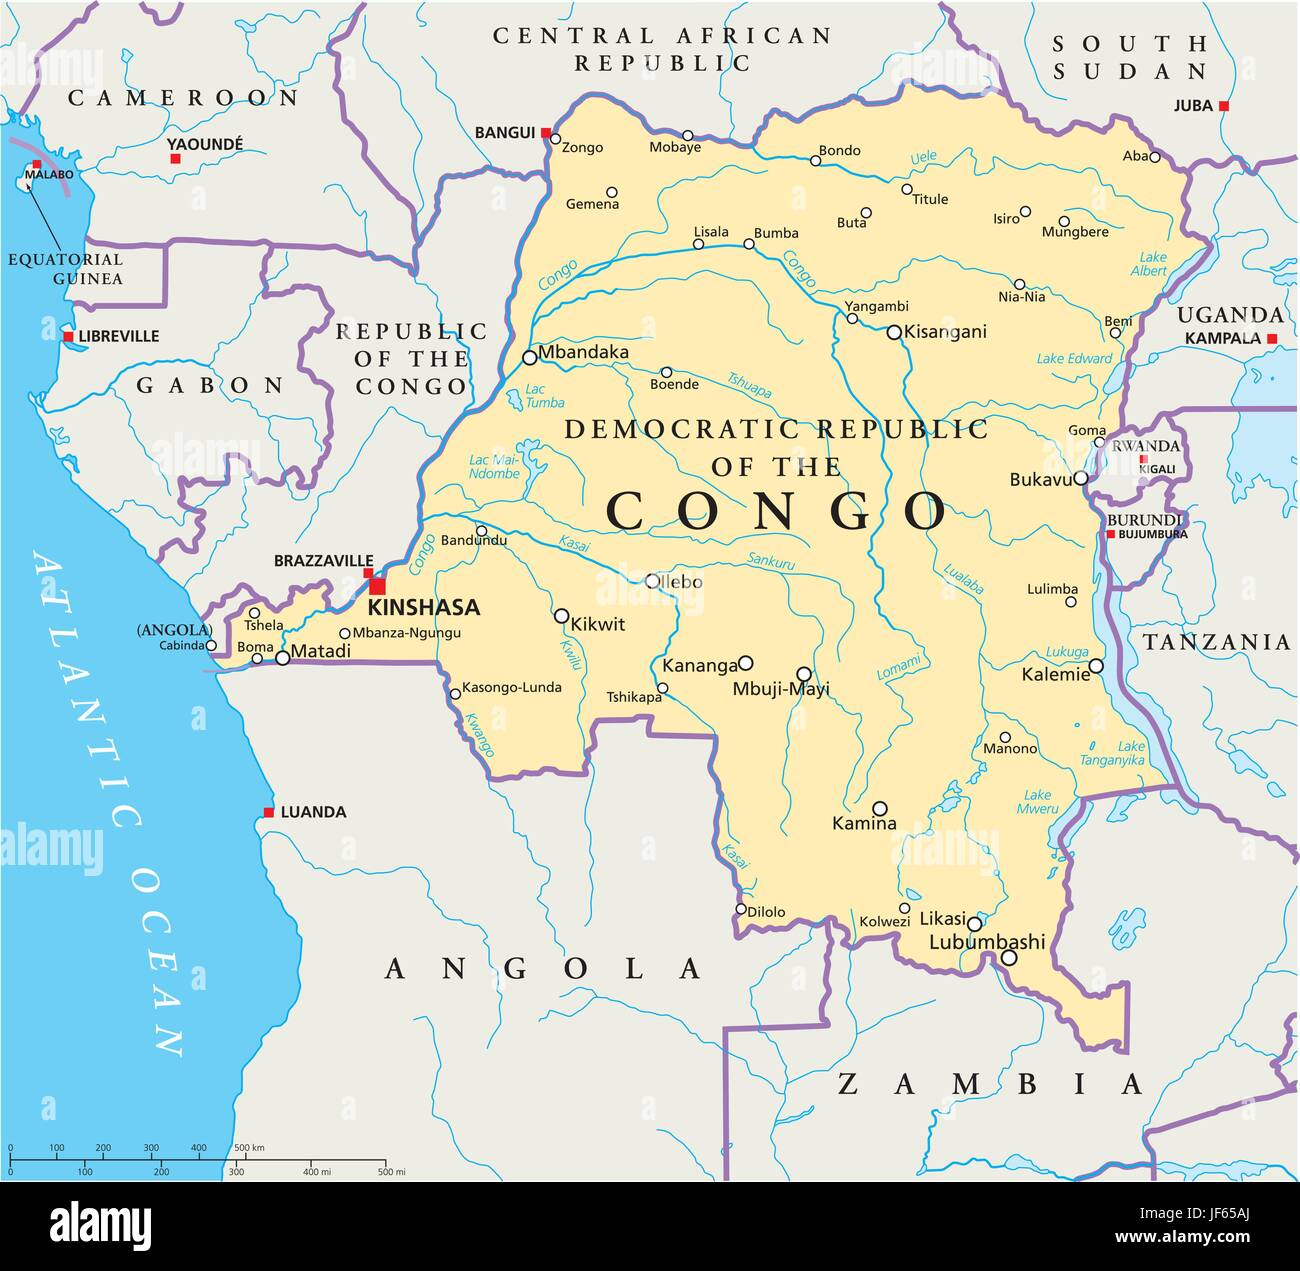 congo zaire map atlas map of the world africa central country republic